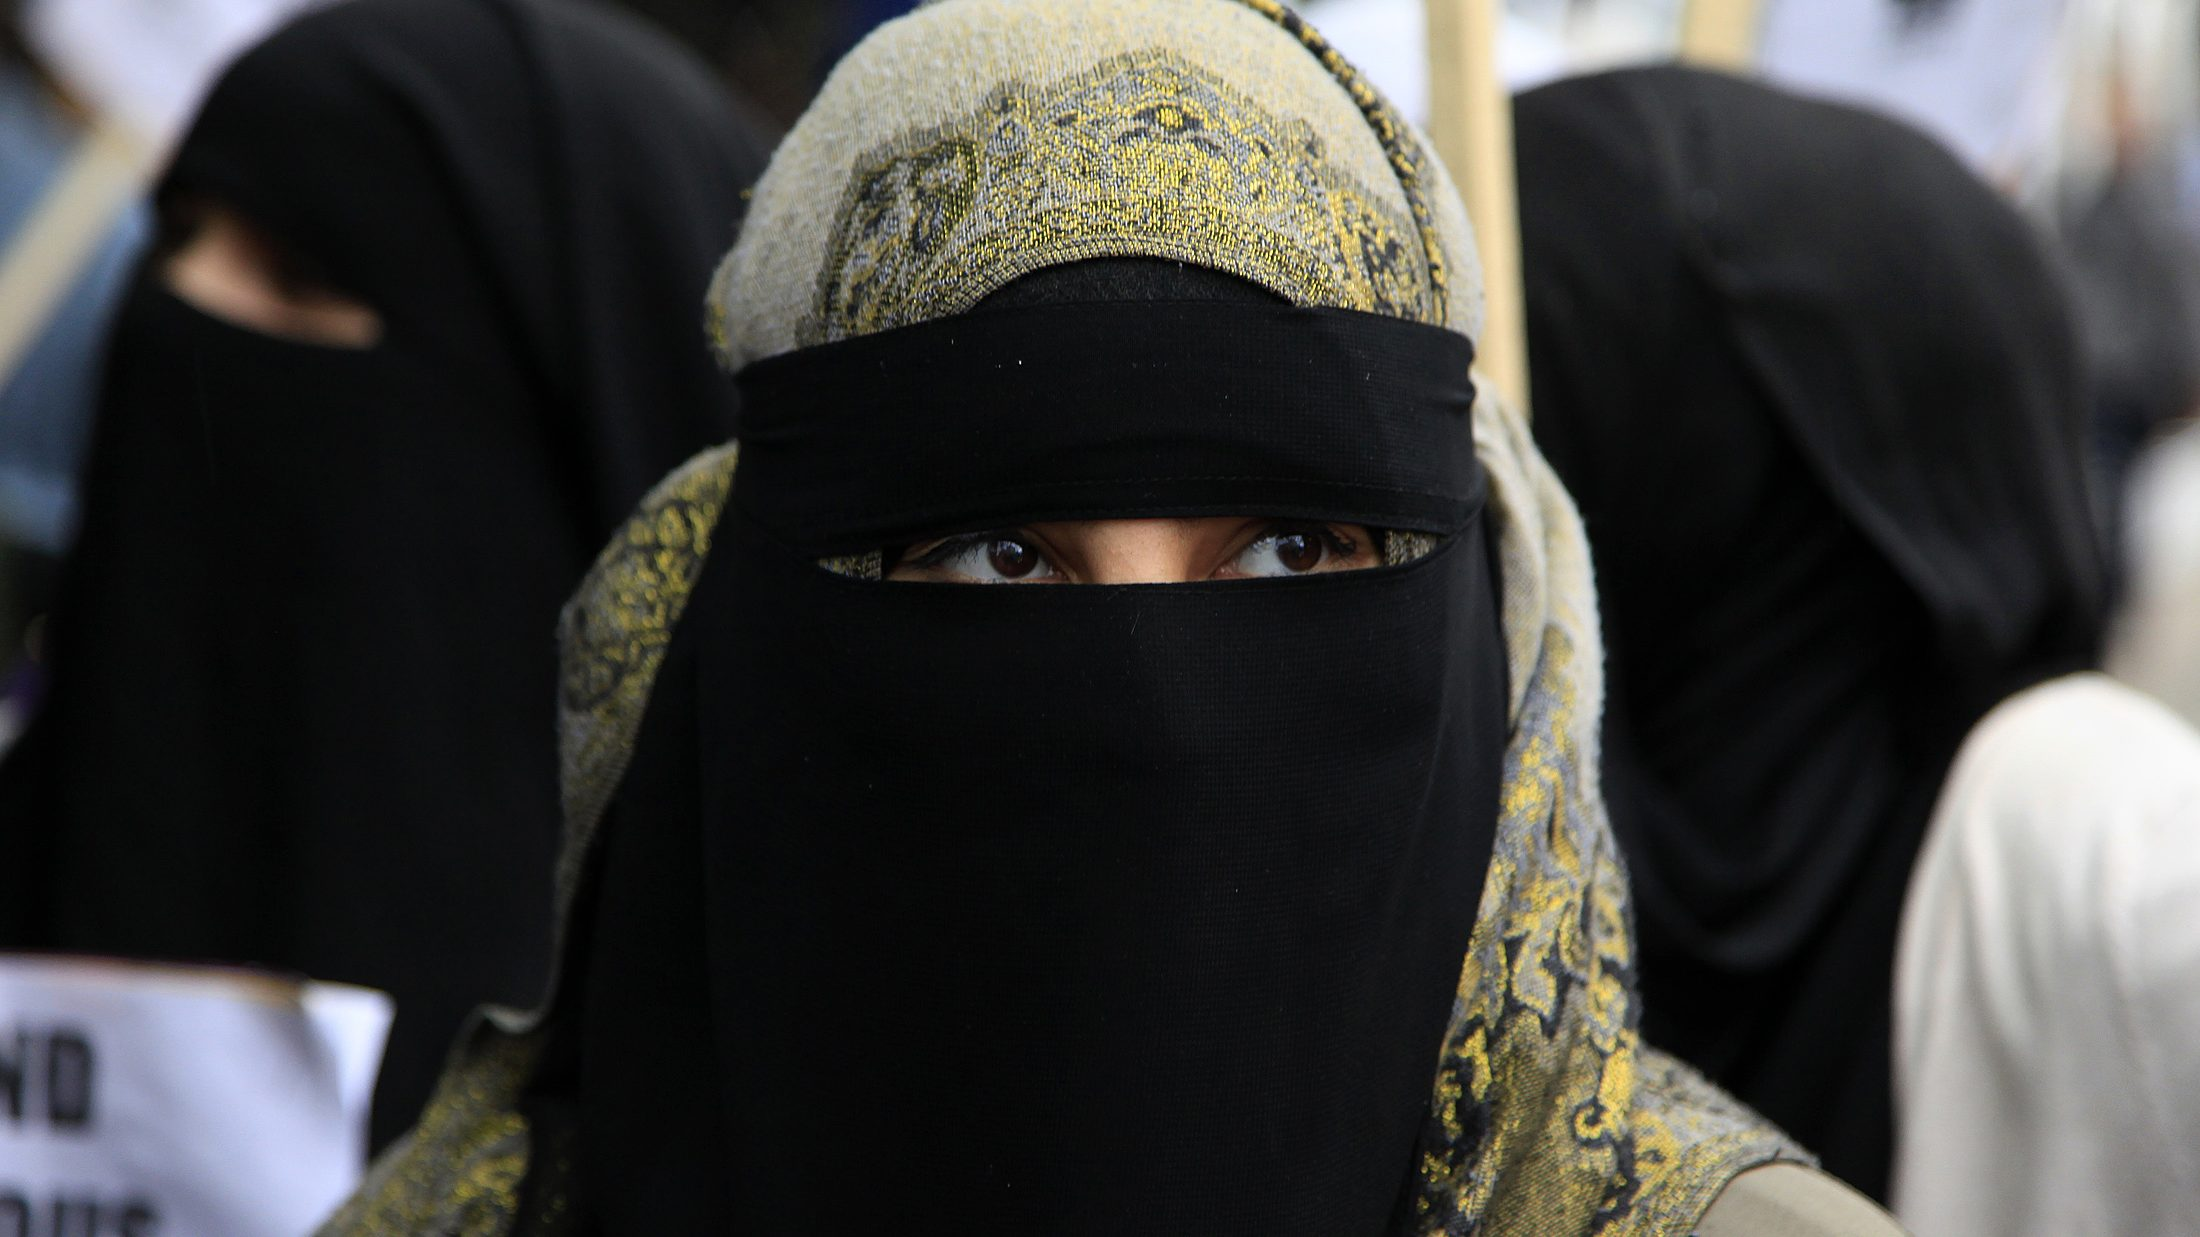 A demonstrator wears a niqab during a protest